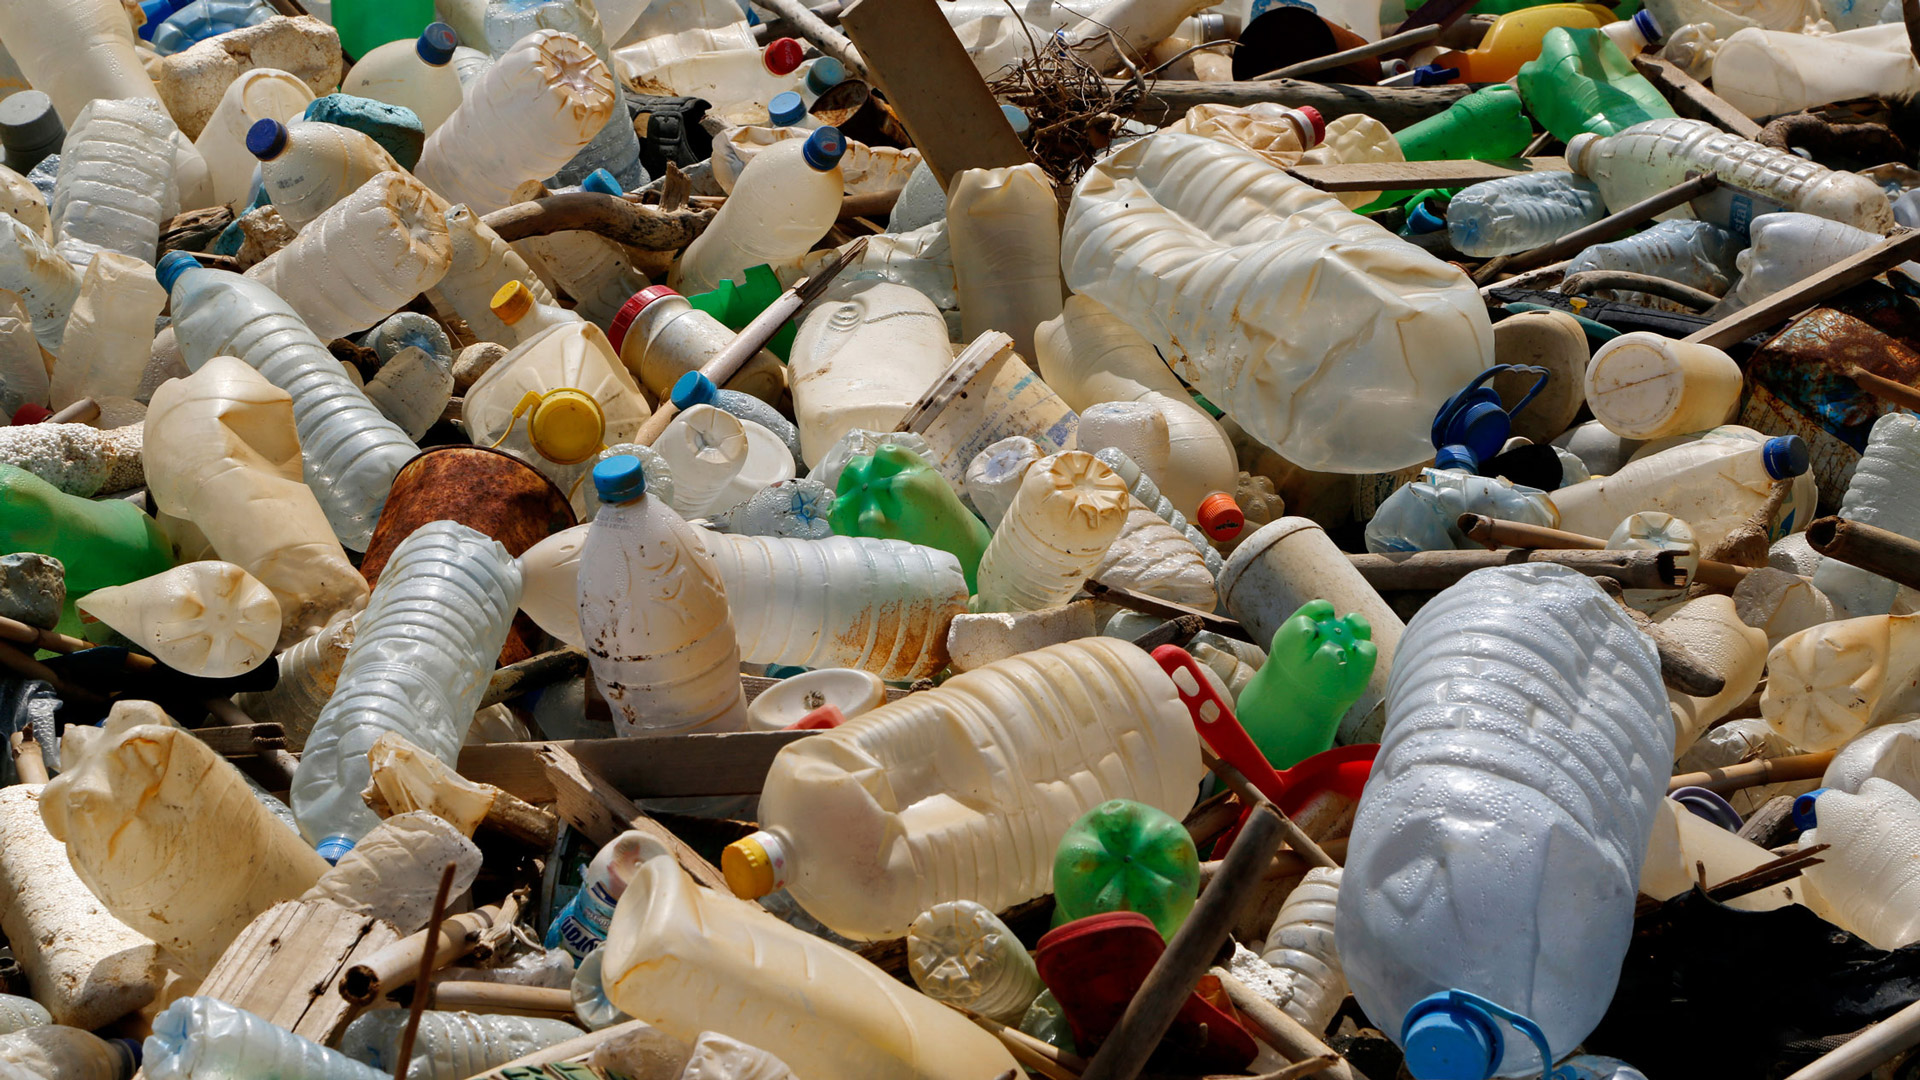 Trash from Beirut's landfills is being dumped into the sea, ending up on beaches and in fishermen's nets.